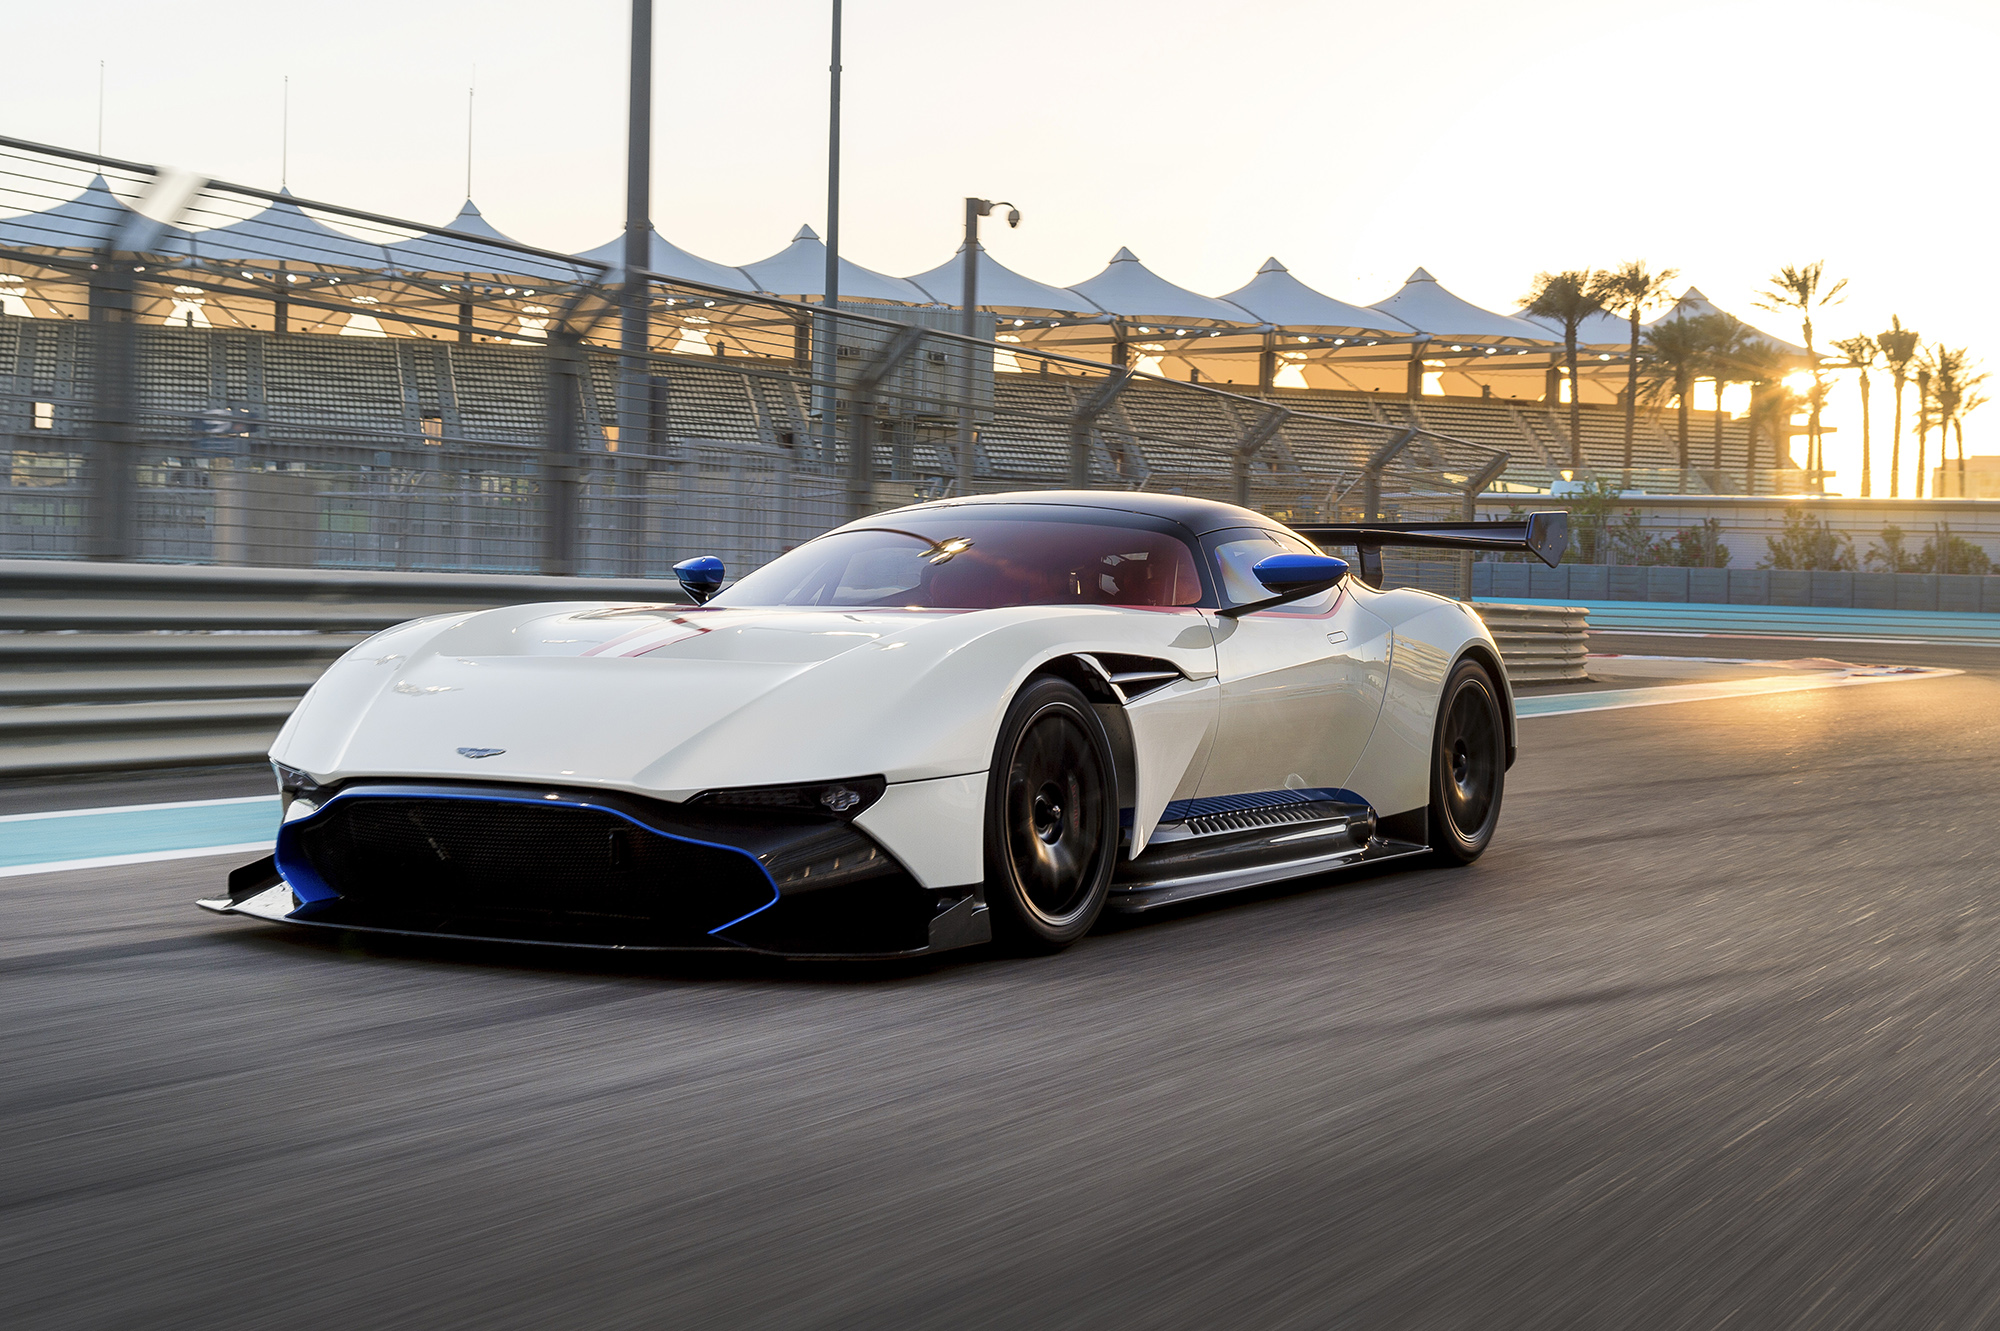 Aston Martin Vulcan >> The Aston Martin Vulcan Is Going Racing Sort Of